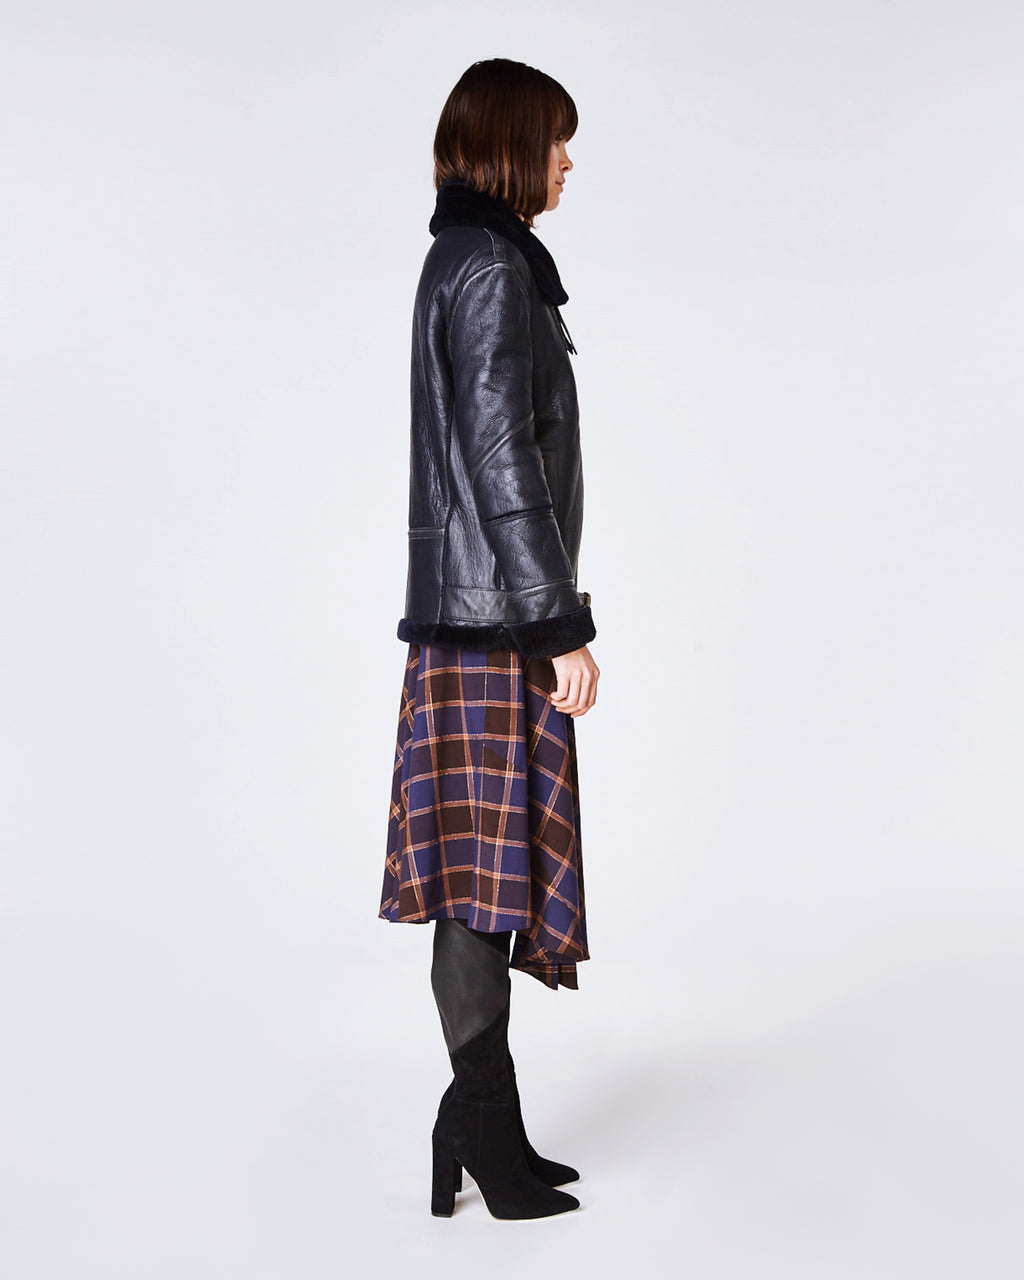 FR10000 - SHEARLING JACKET - outerwear - leather - In an oversized fit, this biker jacket features a soft shearling lining and lamb leather shell. Completed with a belted detail and exposed zipper for closure.